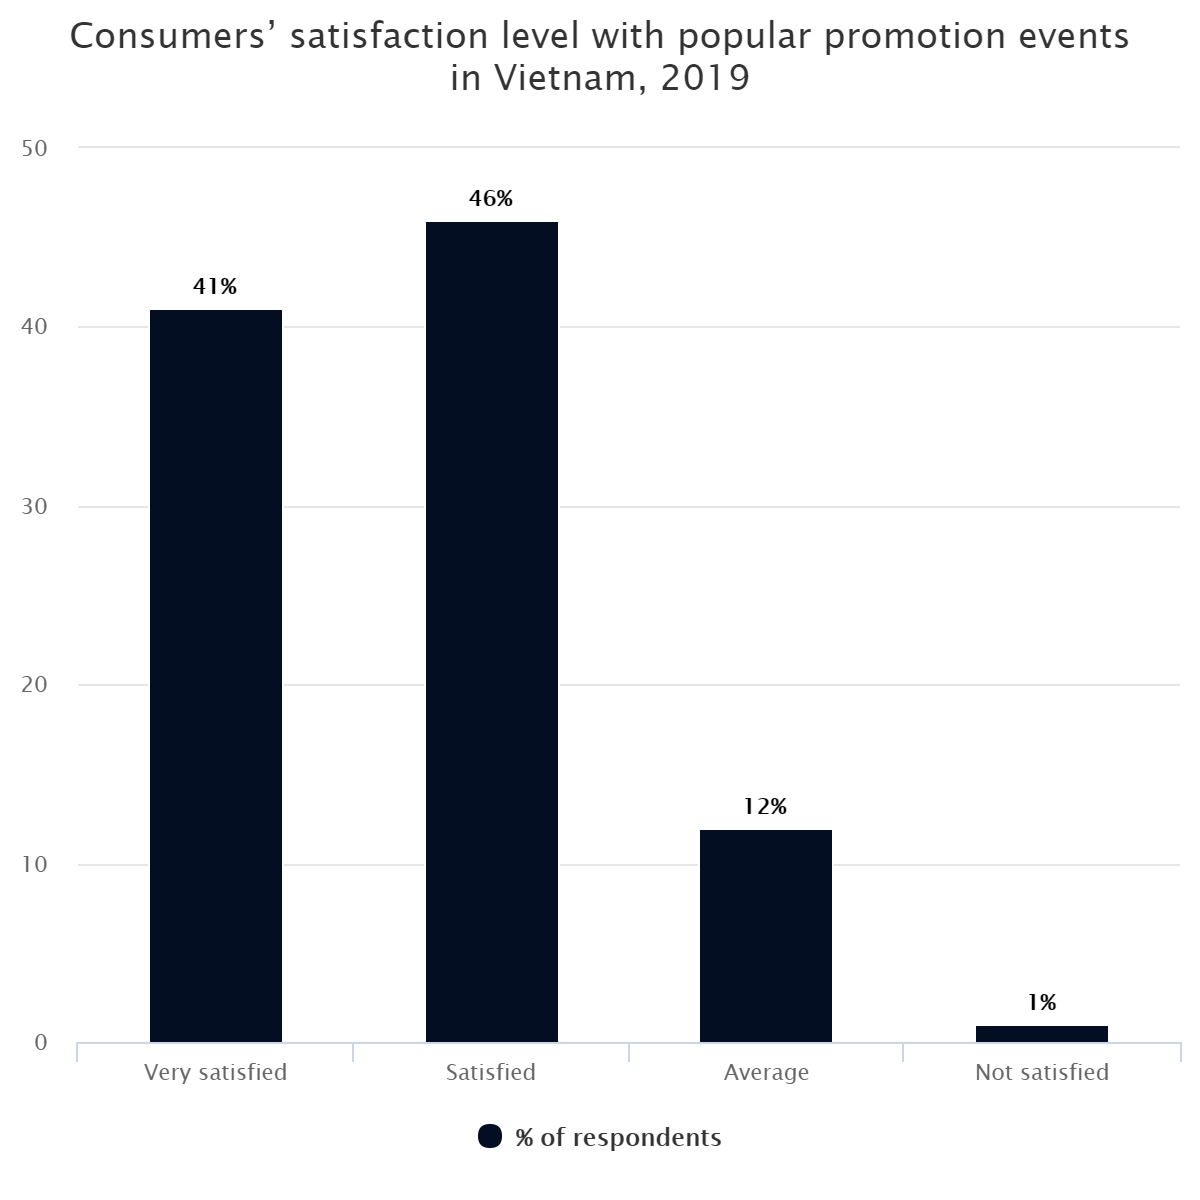 Consumers' satisfaction level with popular promotion events in Vietnam, 2019